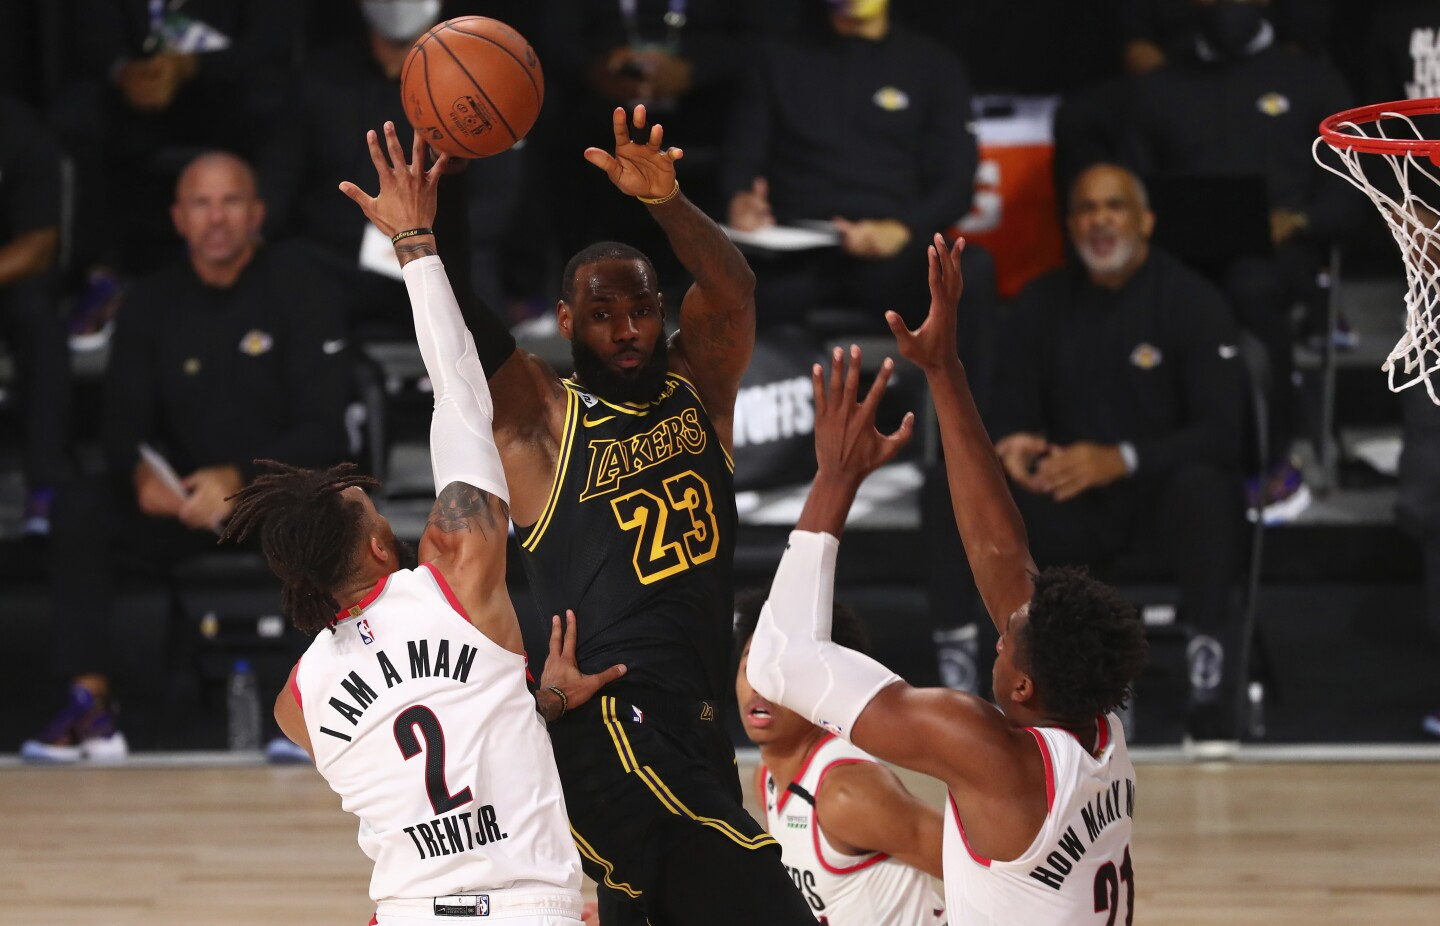 Portland Trail Blazers guard Gary Trent Jr., left, and center Hassan Whiteside try to stop Lakers forward LeBron James.